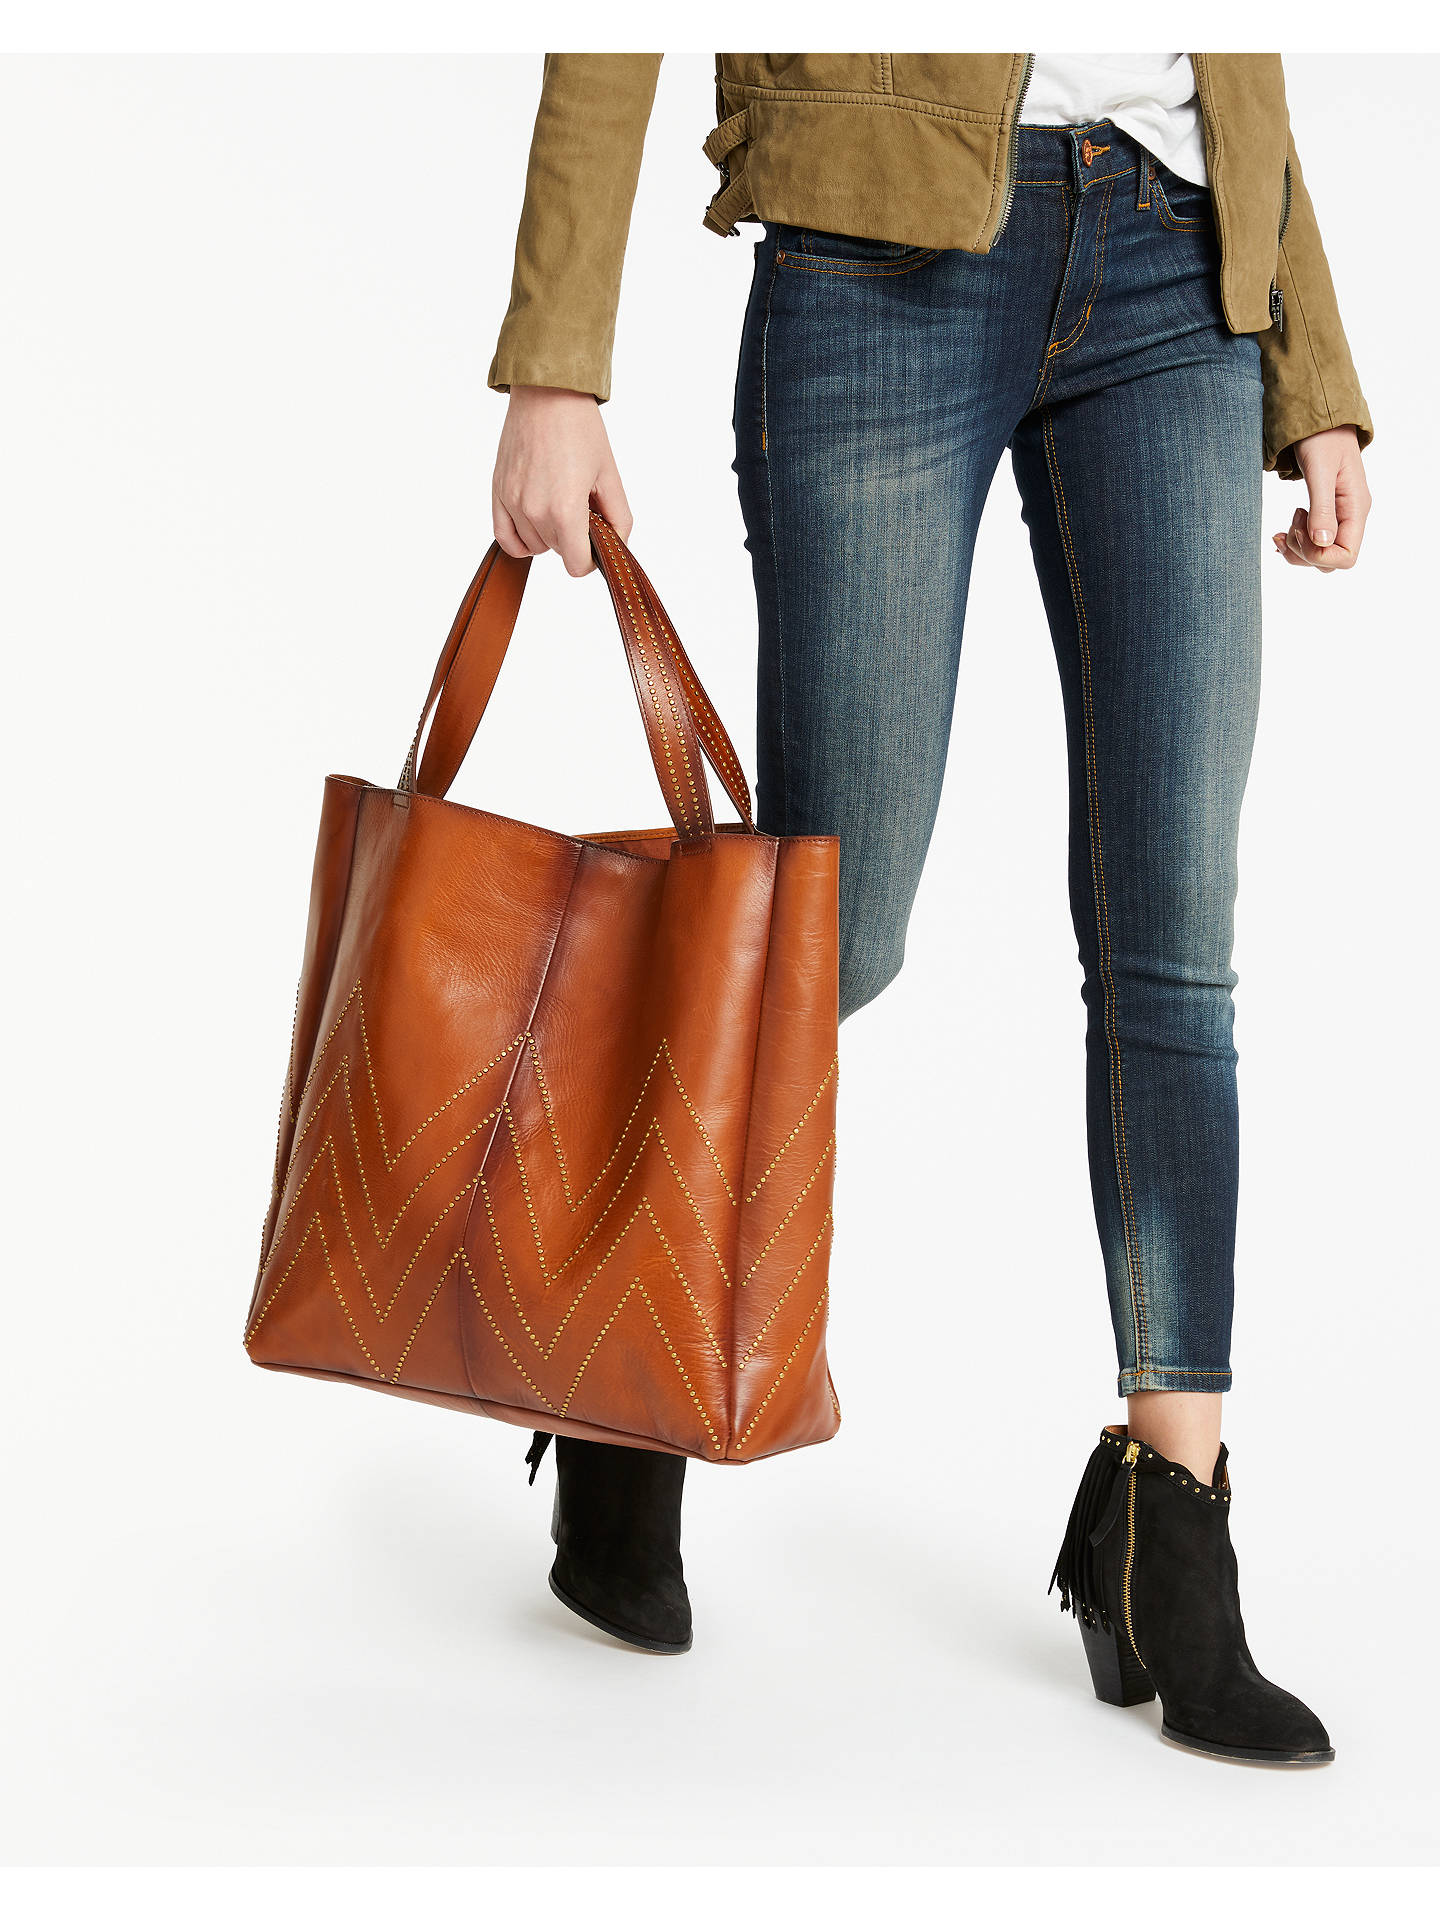 BuyAND/OR Isabella Leather Stud Tote Bag, Tan Online at johnlewis.com